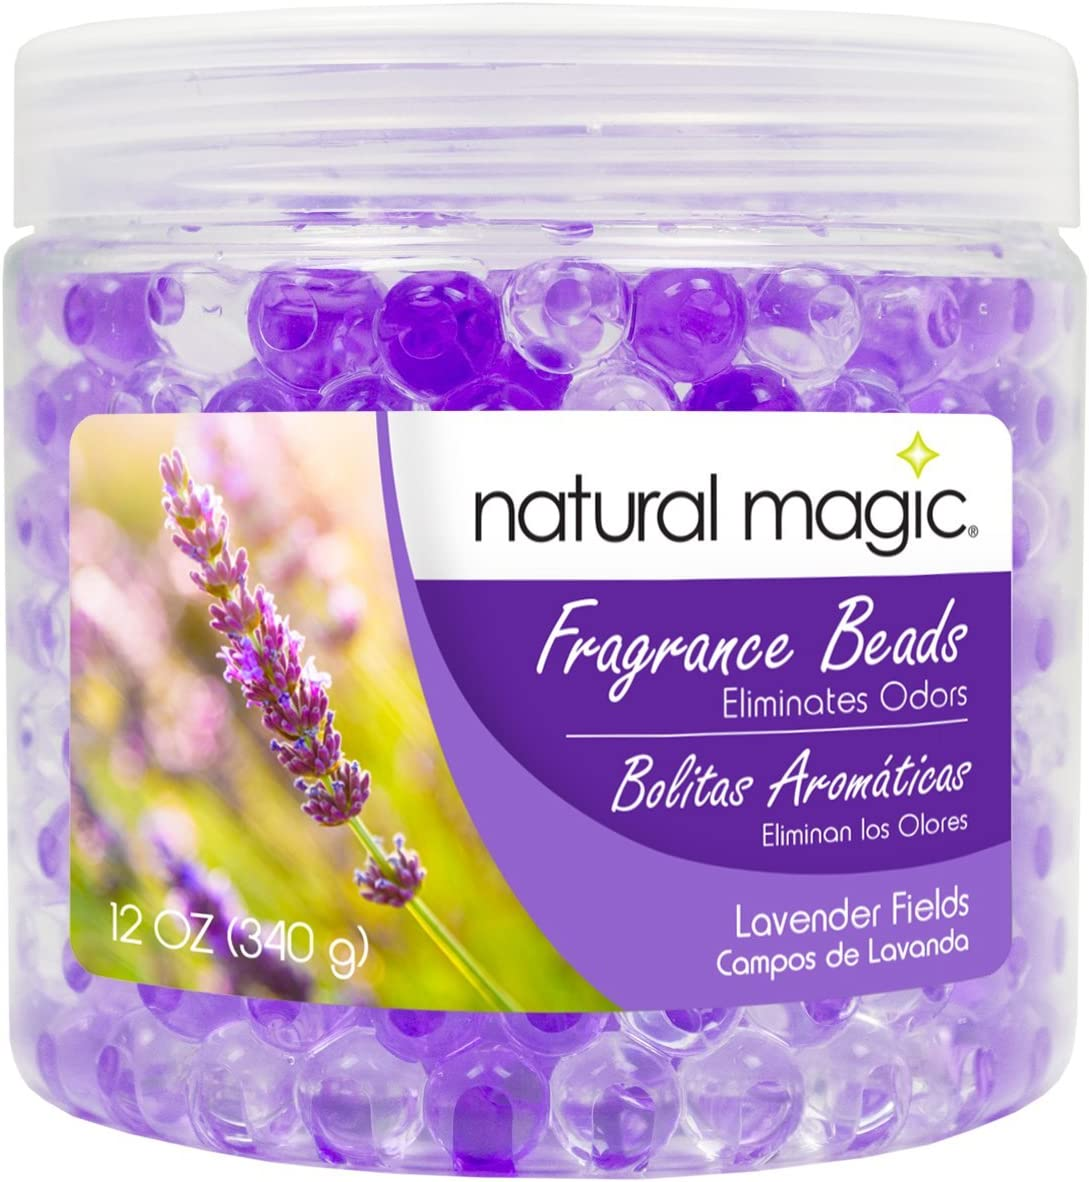 Natural Magic Fragrance Beads - Odor Absorbing - 12 Ounces - Lavender